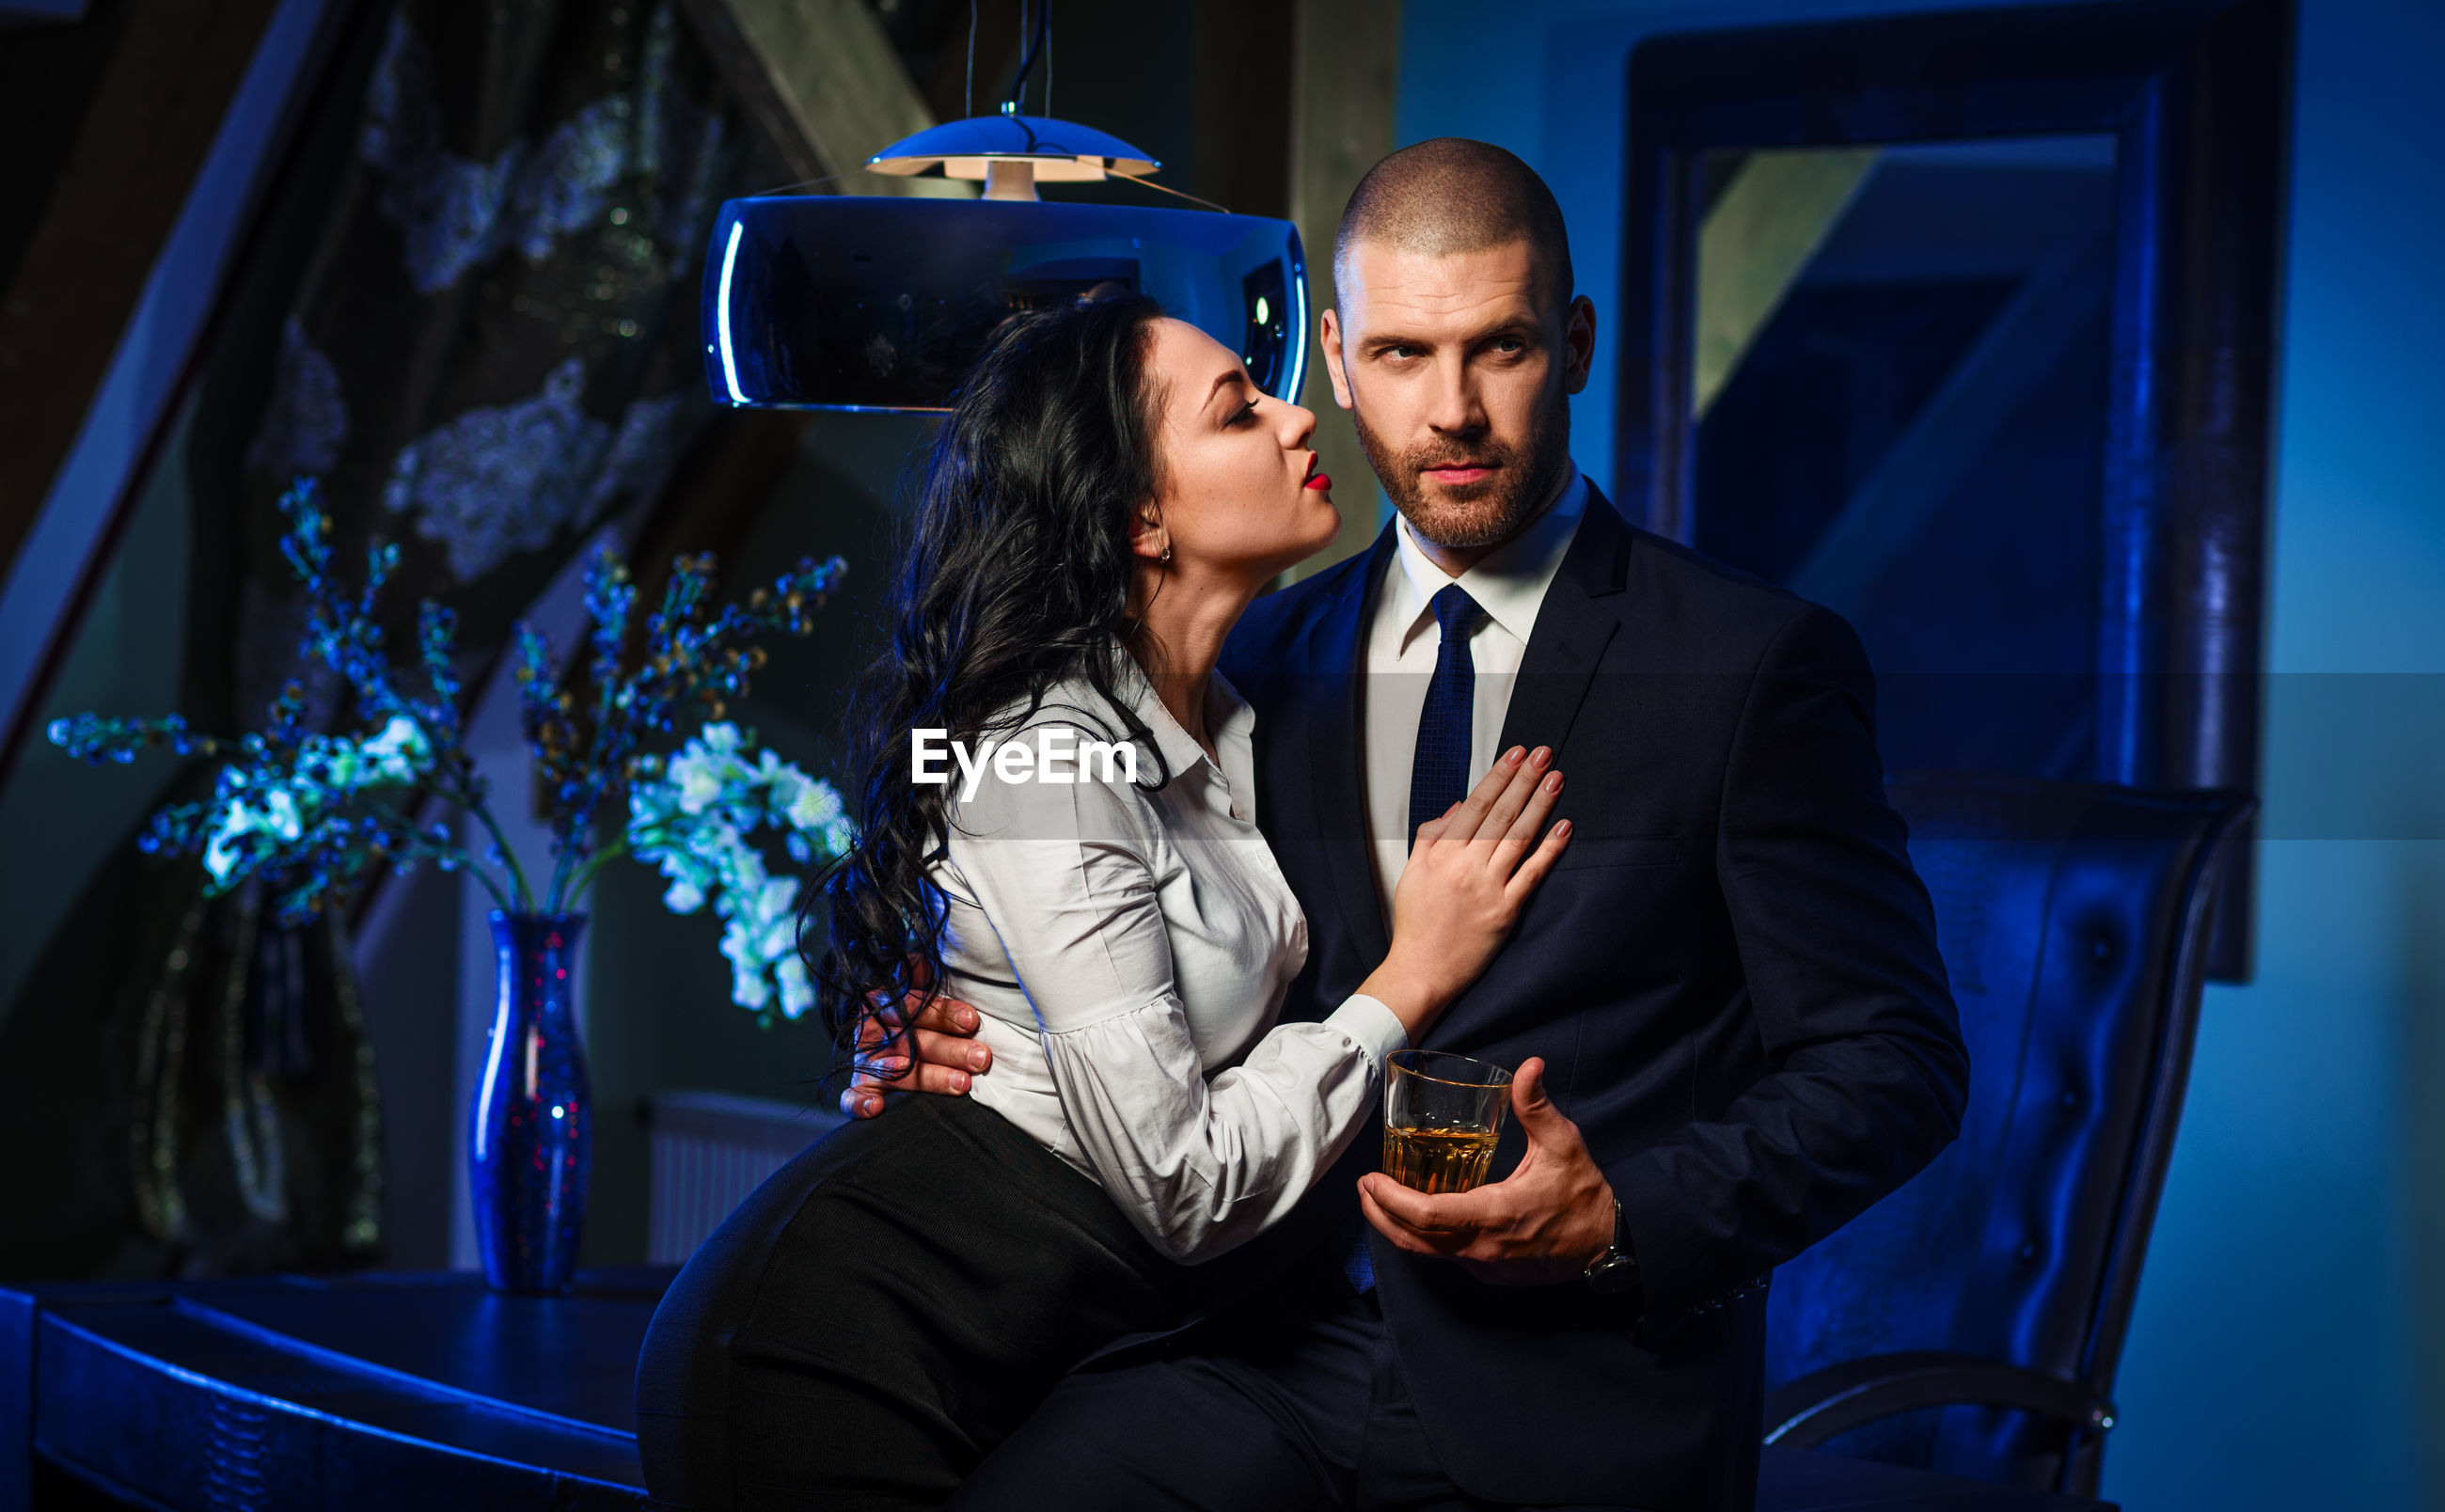 Businessman holding alcohol while standing with romantic woman in office